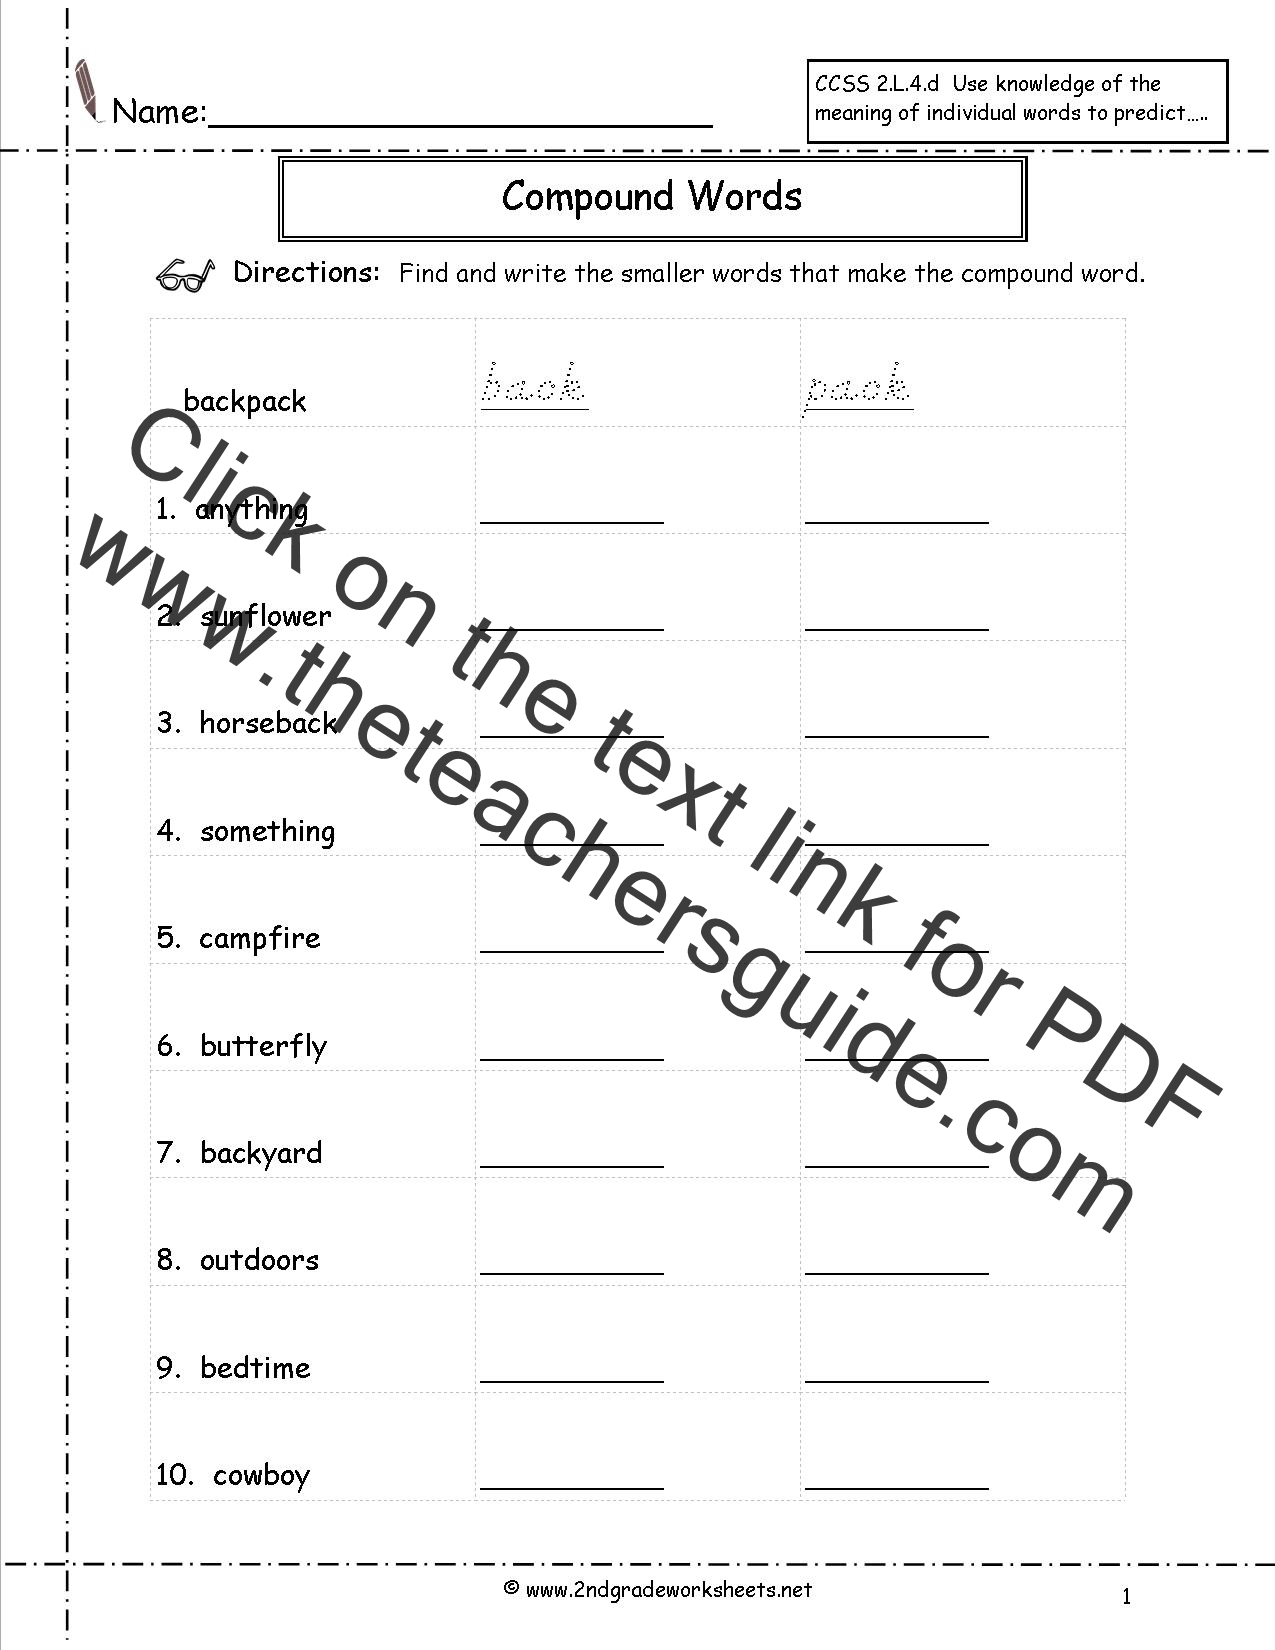 worksheet Grammar Review Worksheets free languagegrammar worksheets and printouts compound words worksheets